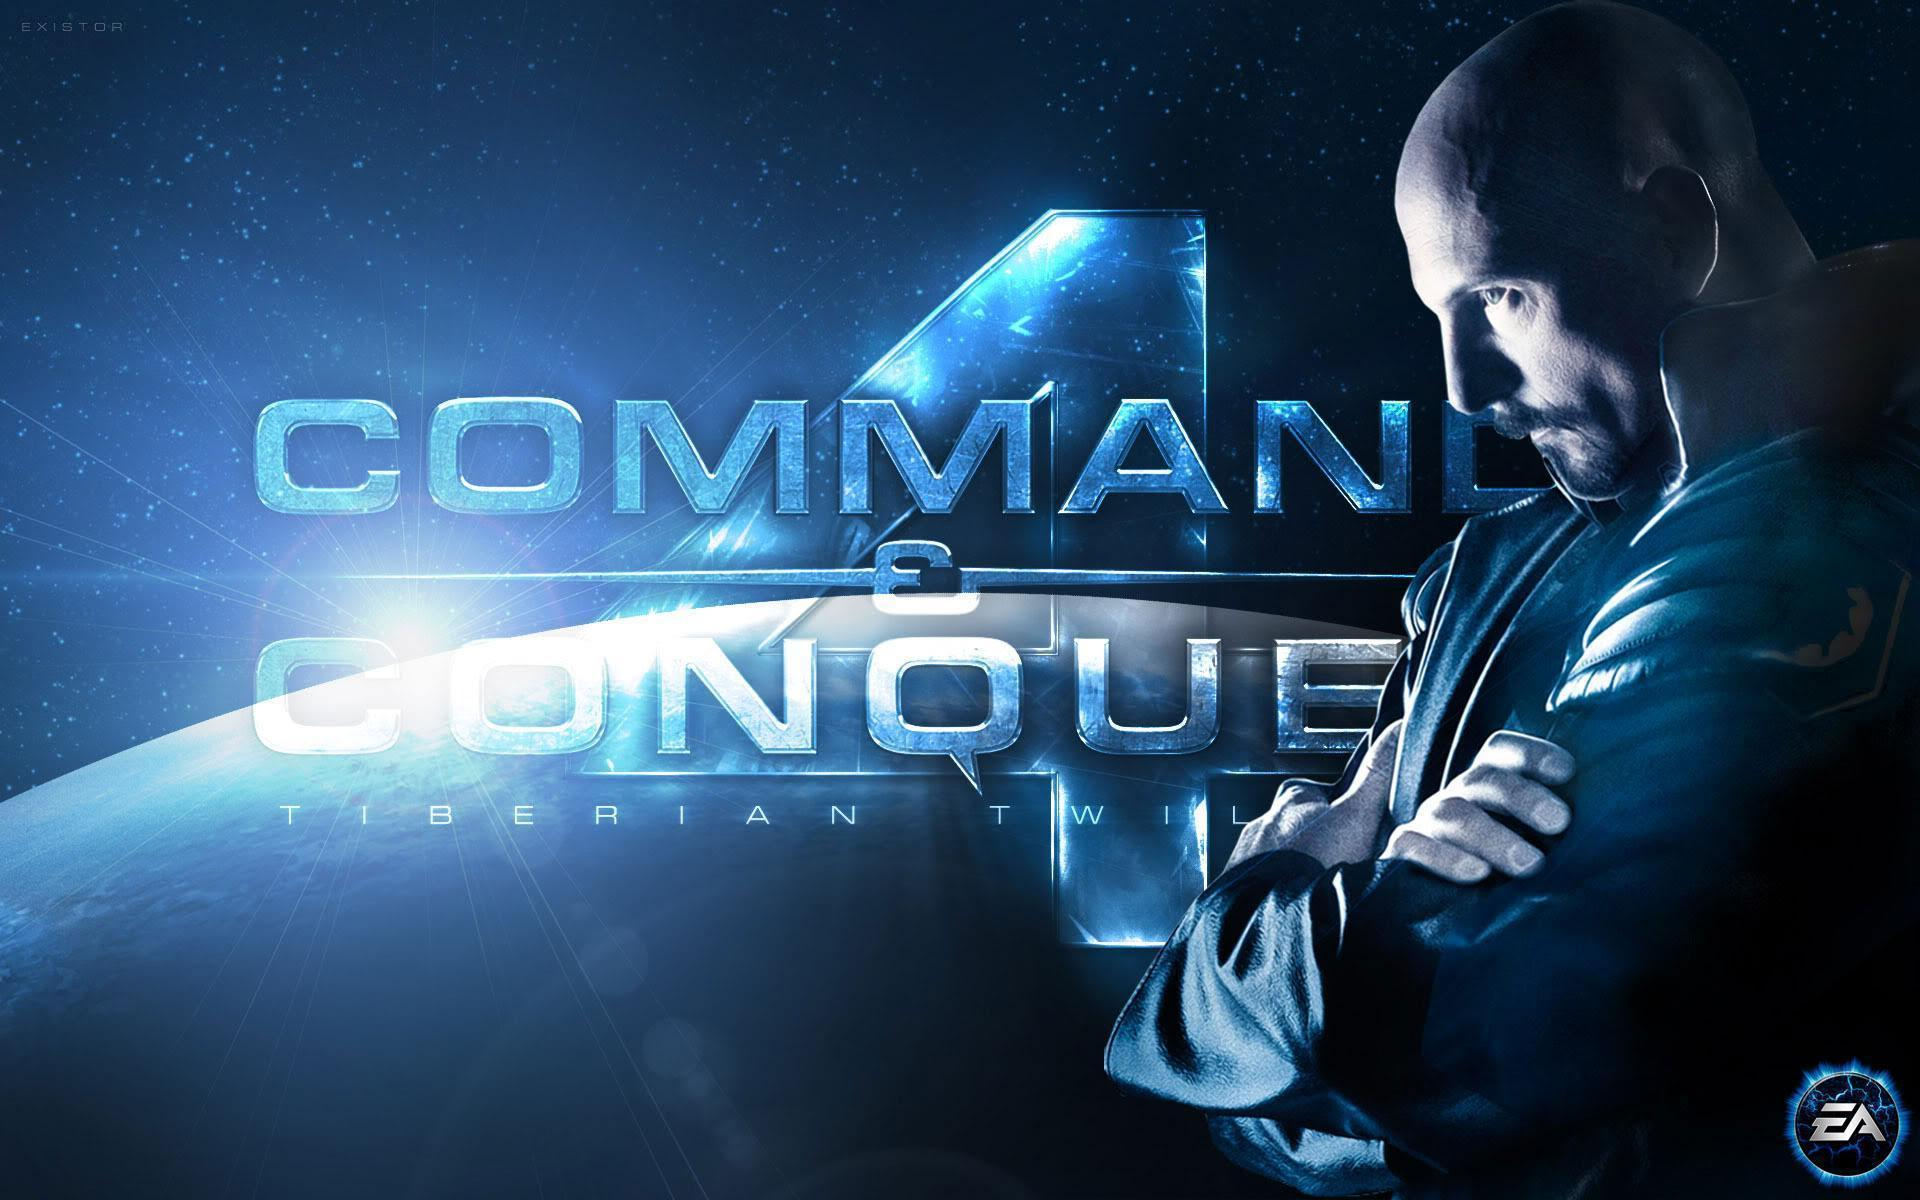 Command & Conquer 4 Tiberian Twilight Wallpapers - HD Wallpapers 75005